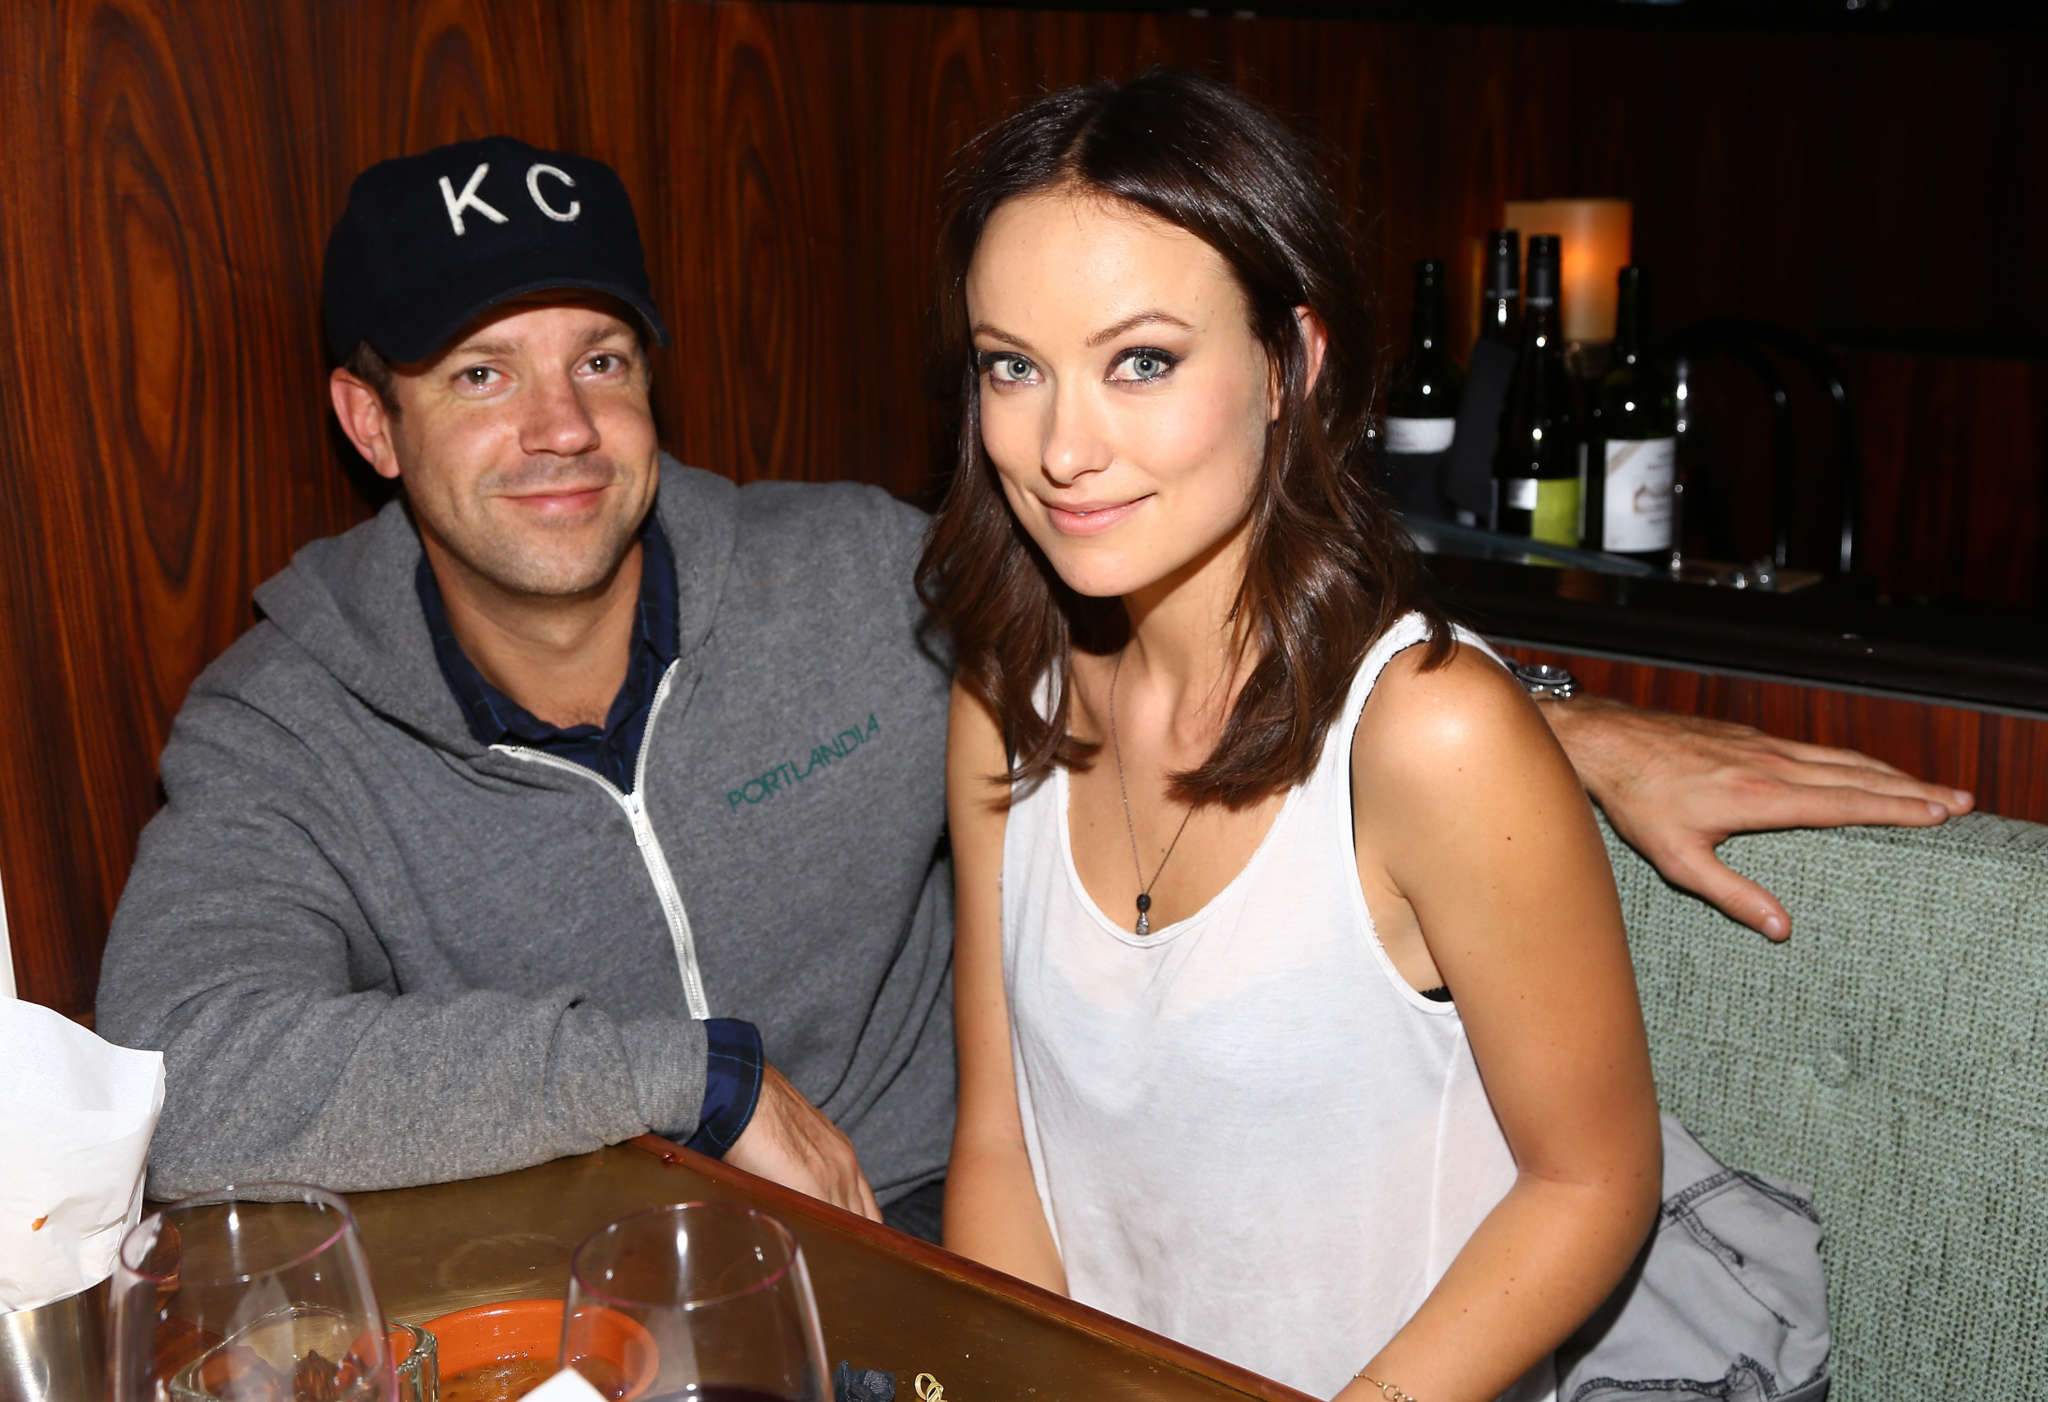 Olivia Wilde And Jason Sudeikis – Here's Why They Broke Their Engagement!